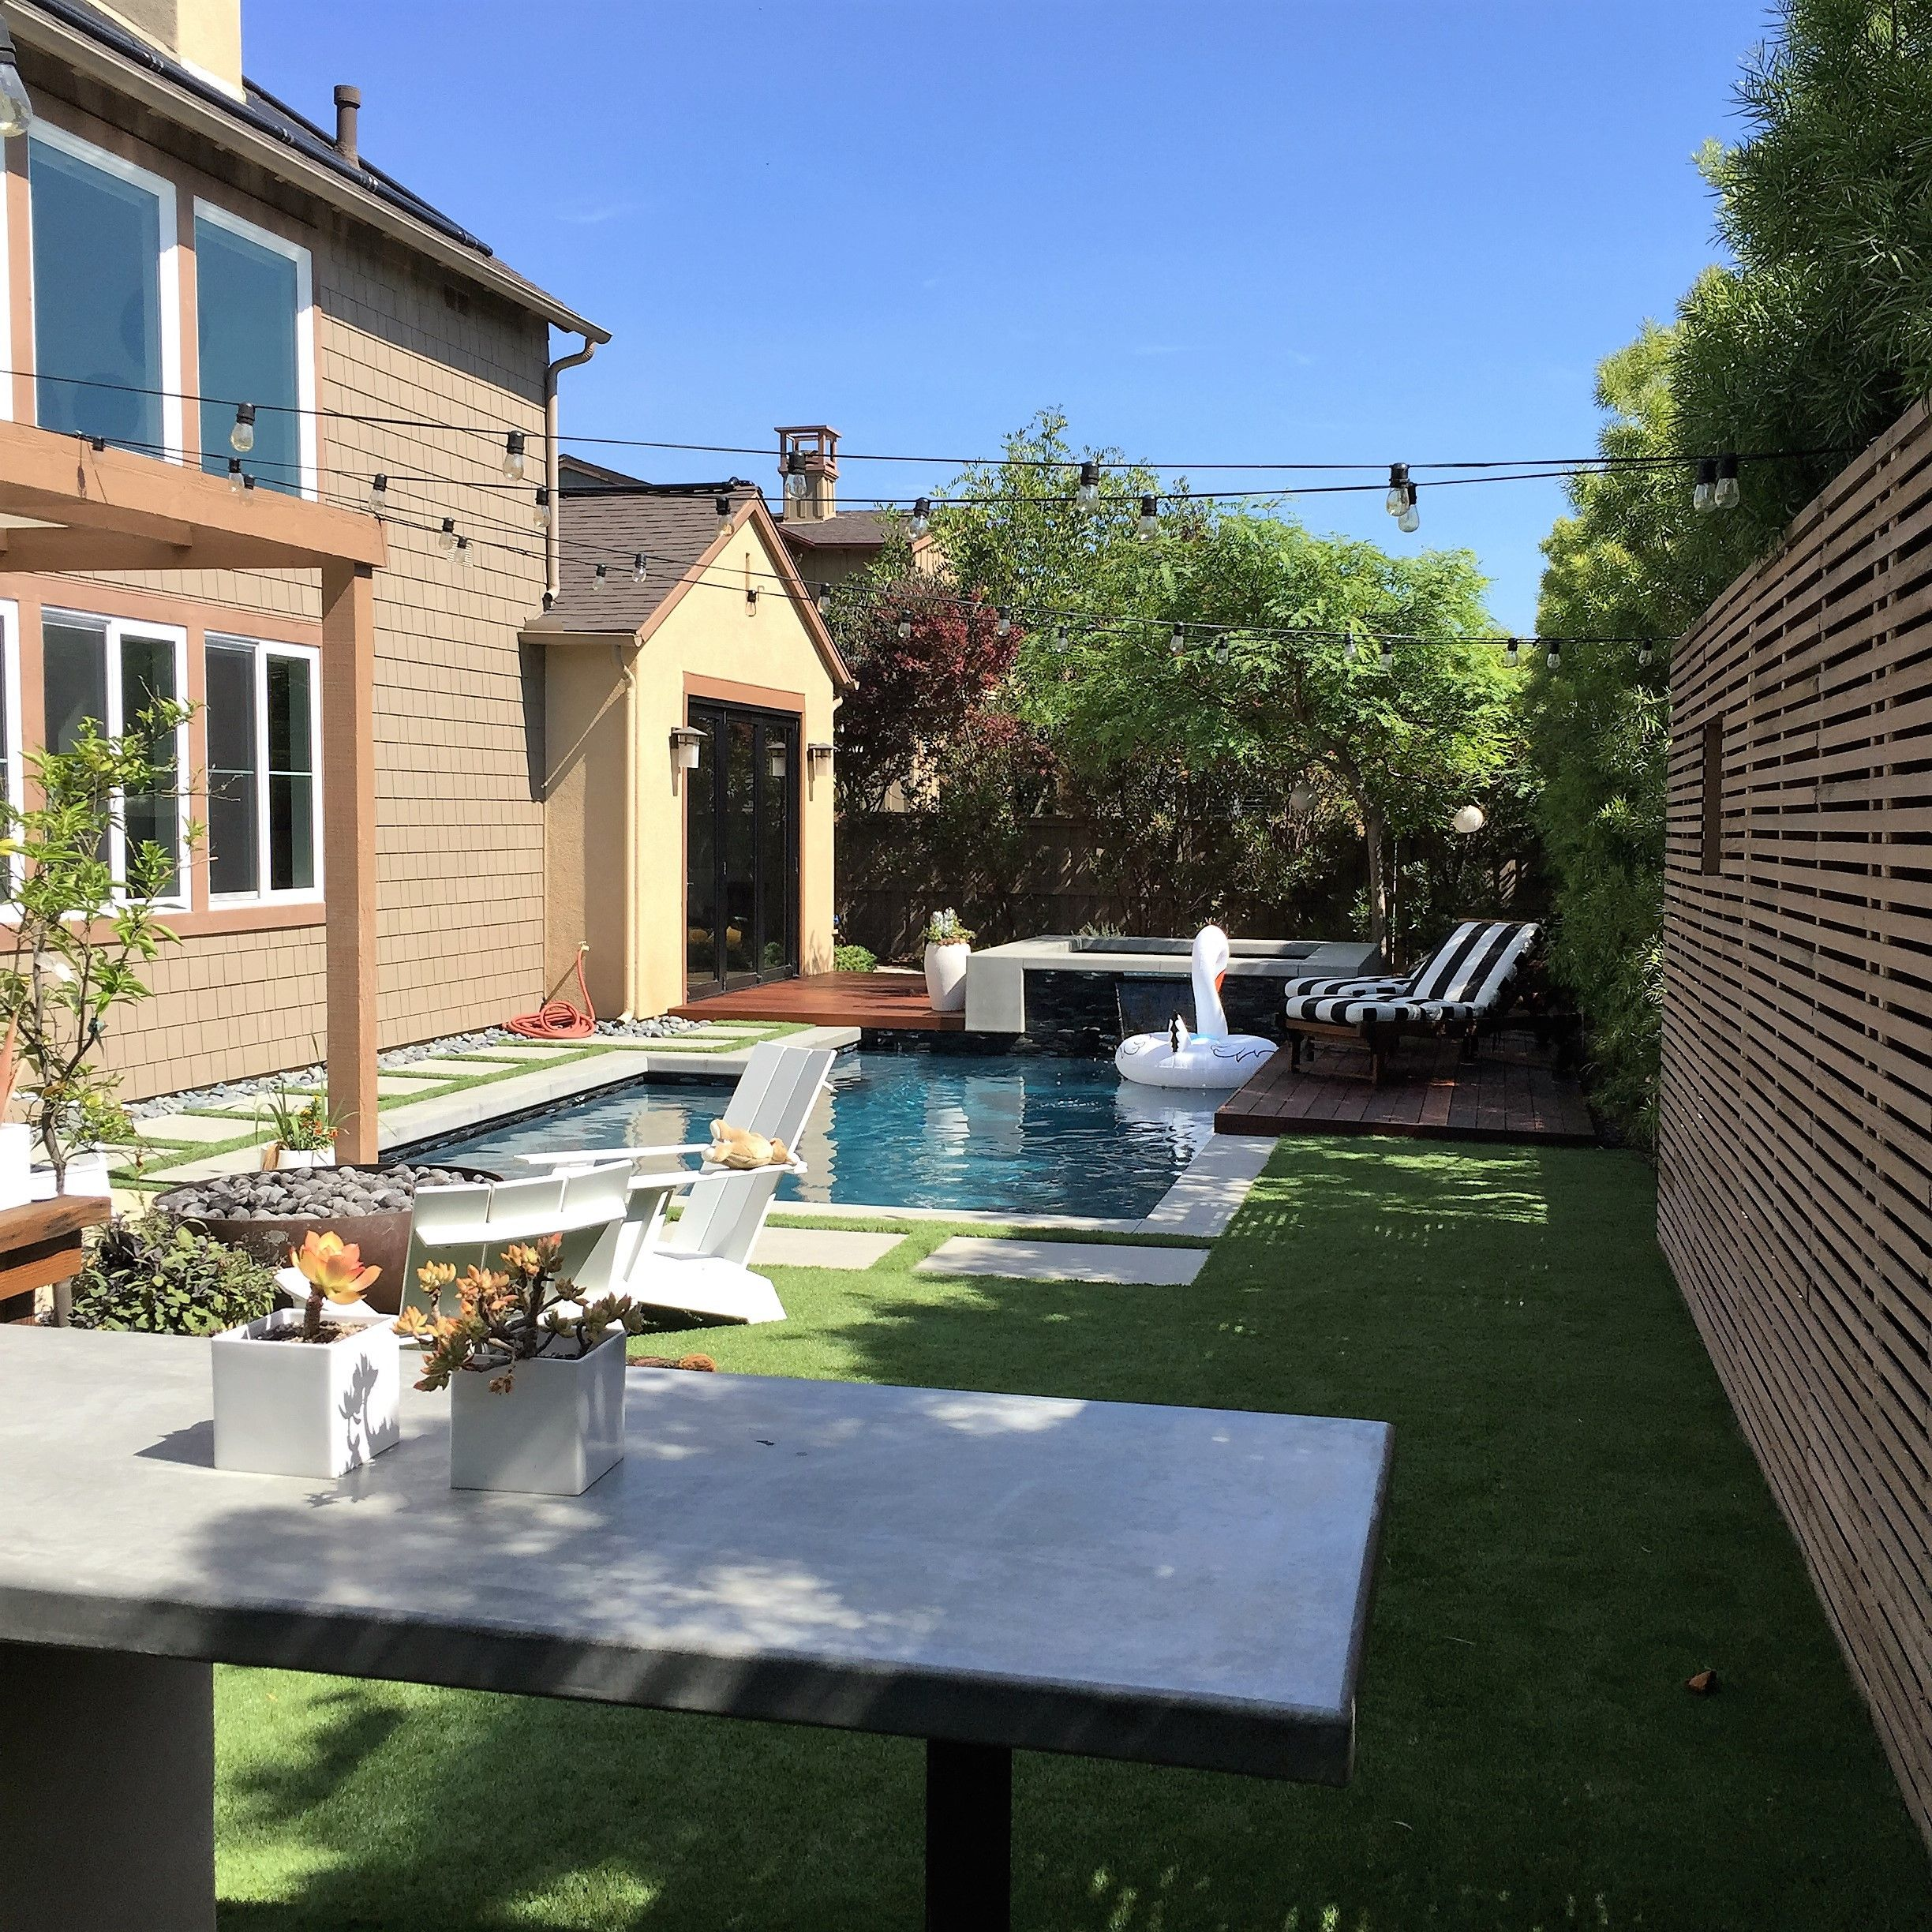 IMG_8305.JPG | Sustainable landscaping, San diego houses ...